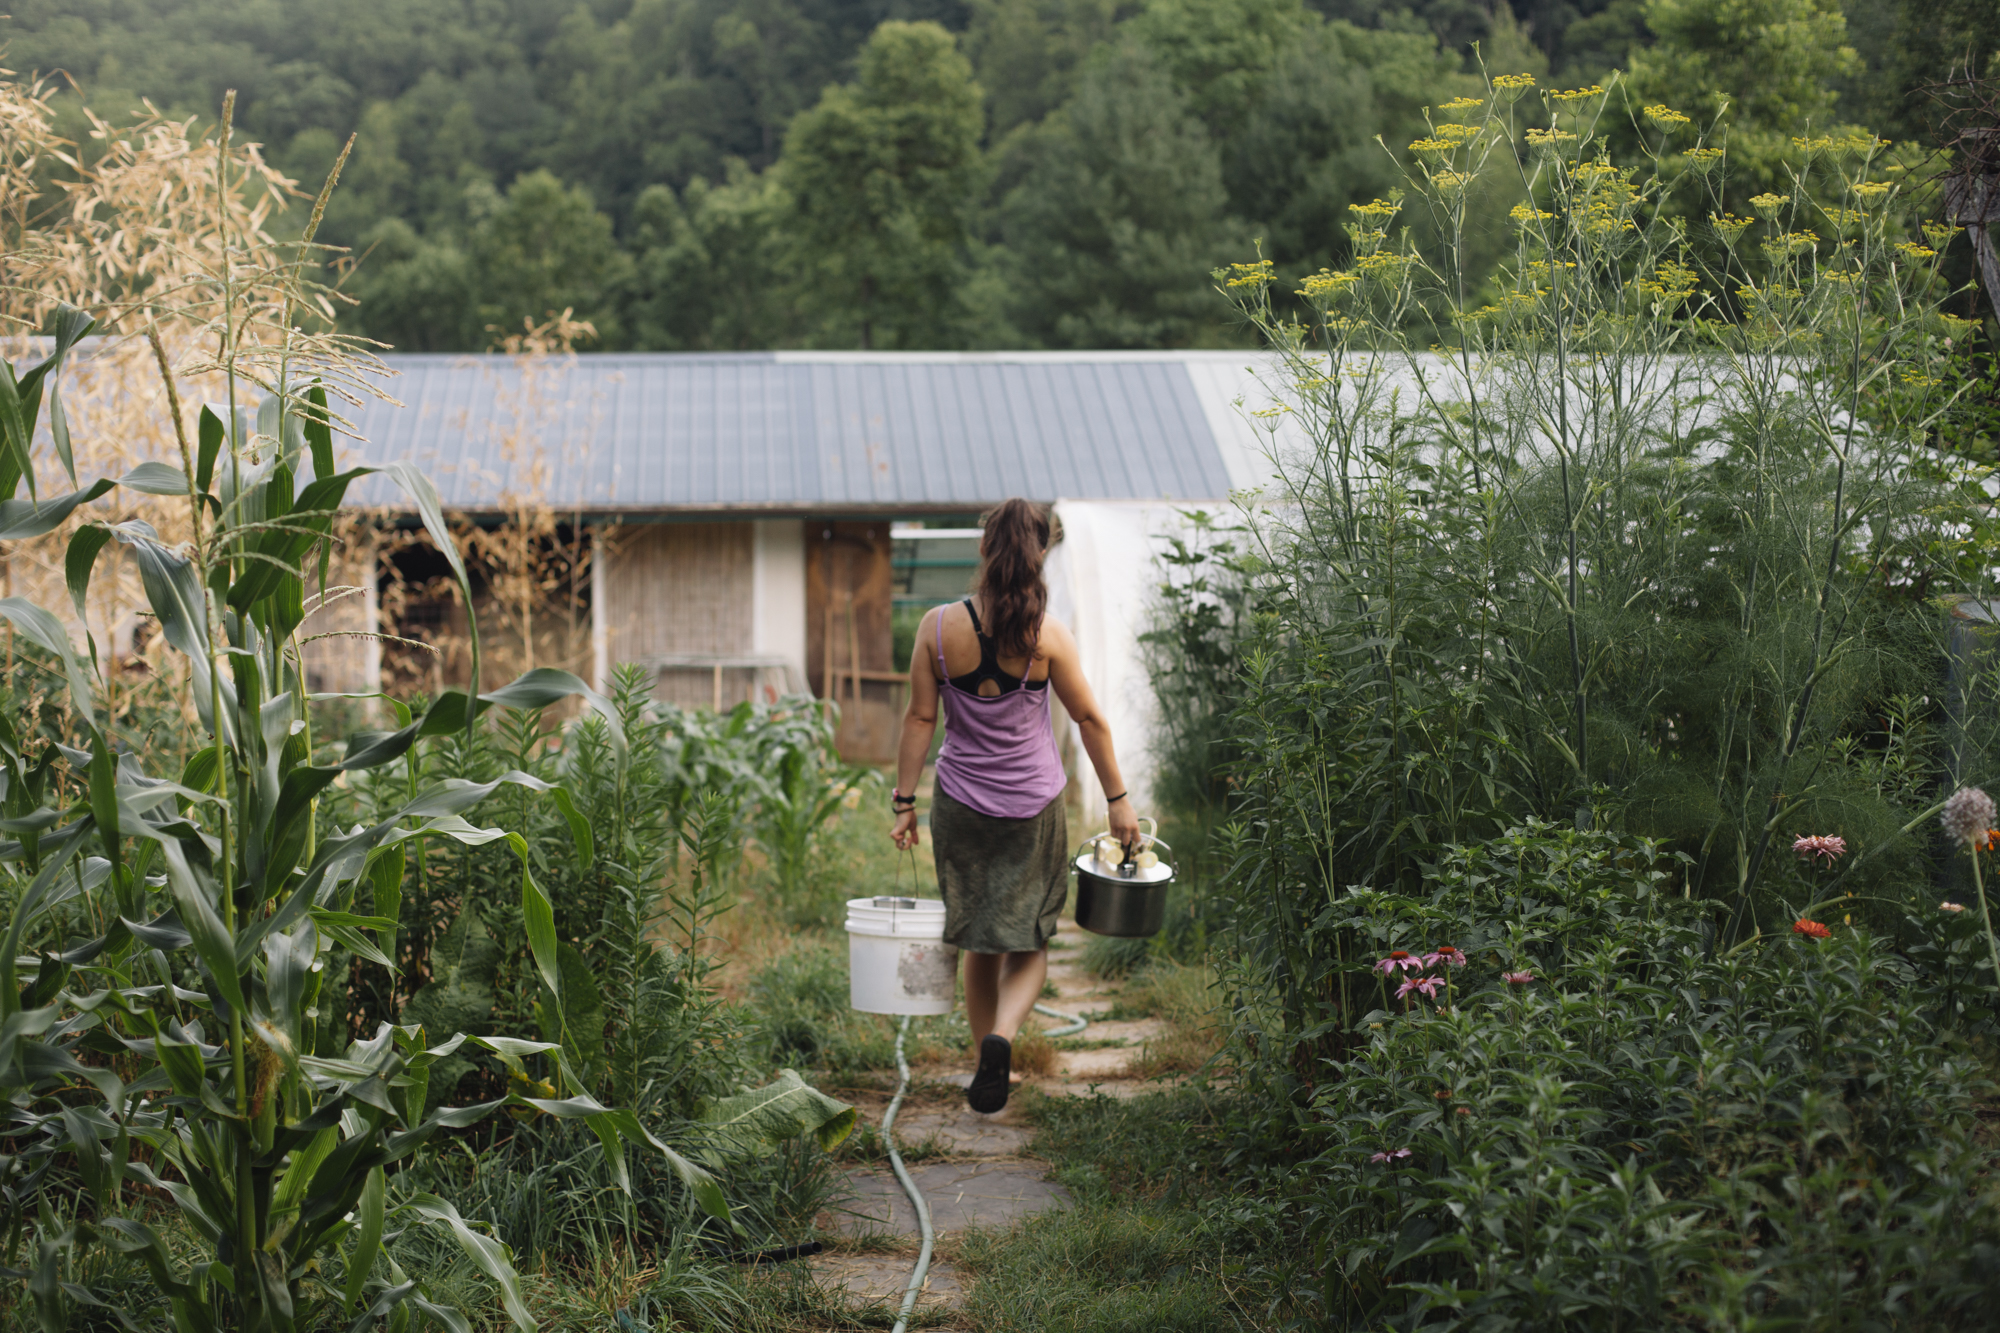 Wide-angle shot from behind of a woman carrying buckets through a lush garden toward a house with green mountains behind it.